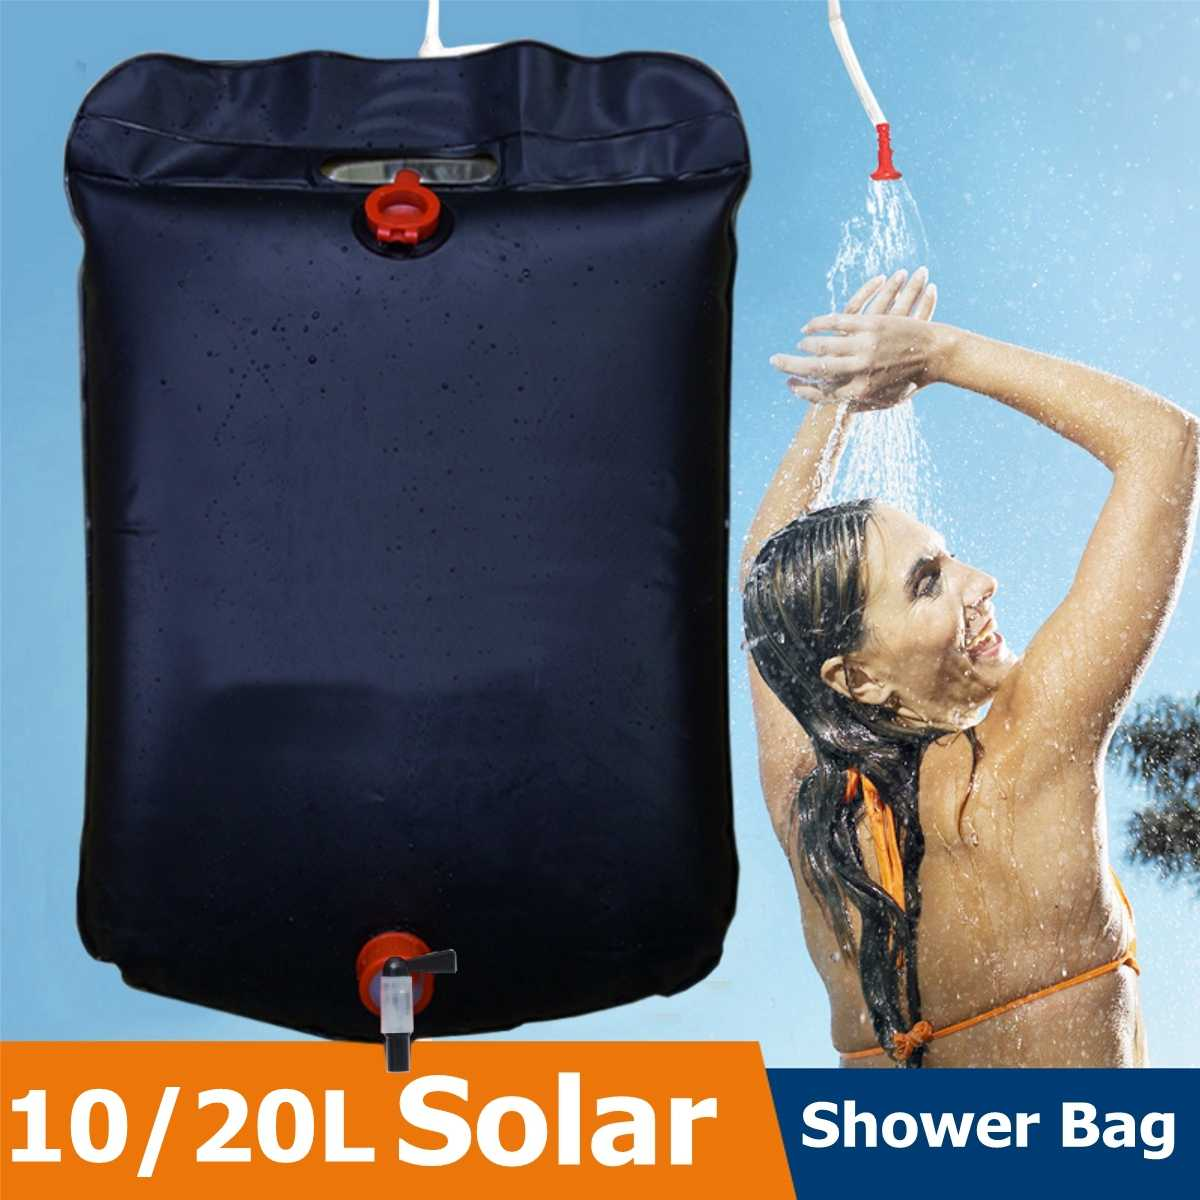 10L 20L Portable Outdoor Camping Shower Bag Solar Heated Shower Bathing Picnic Water Bag Water Storage for Travel Hiking BBQ